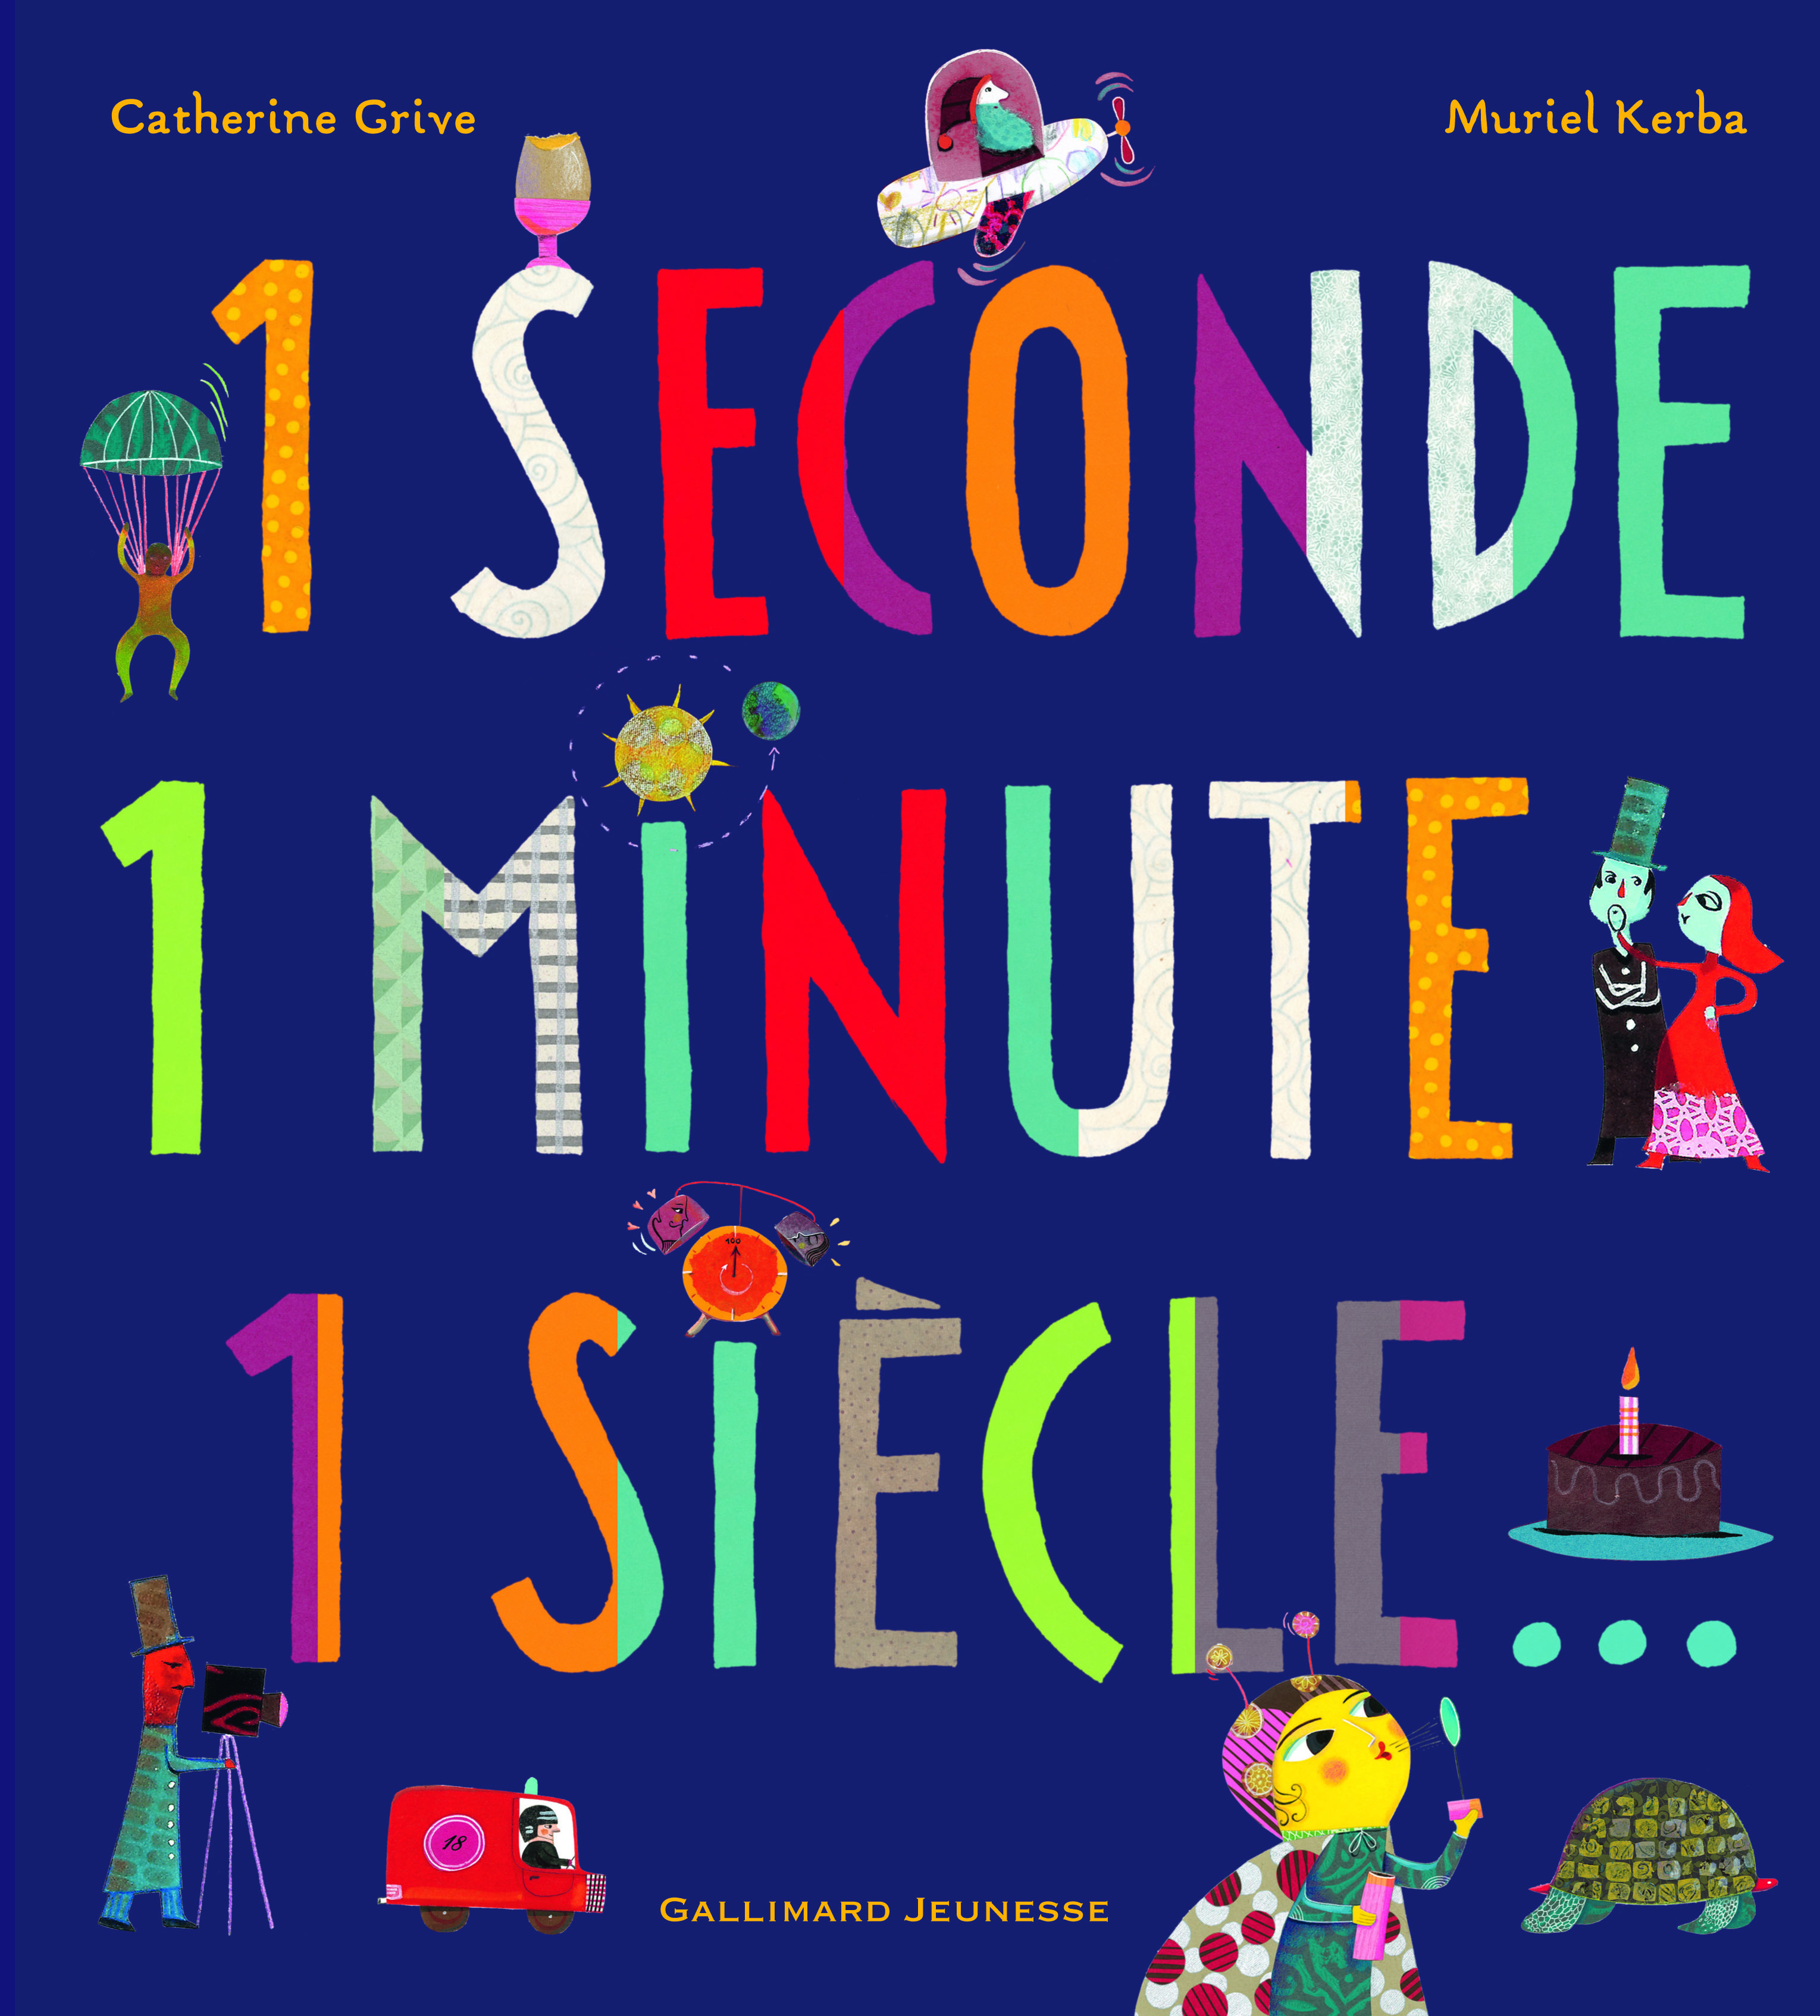 1 SECONDE 1 MINUTE 1 SIECLE